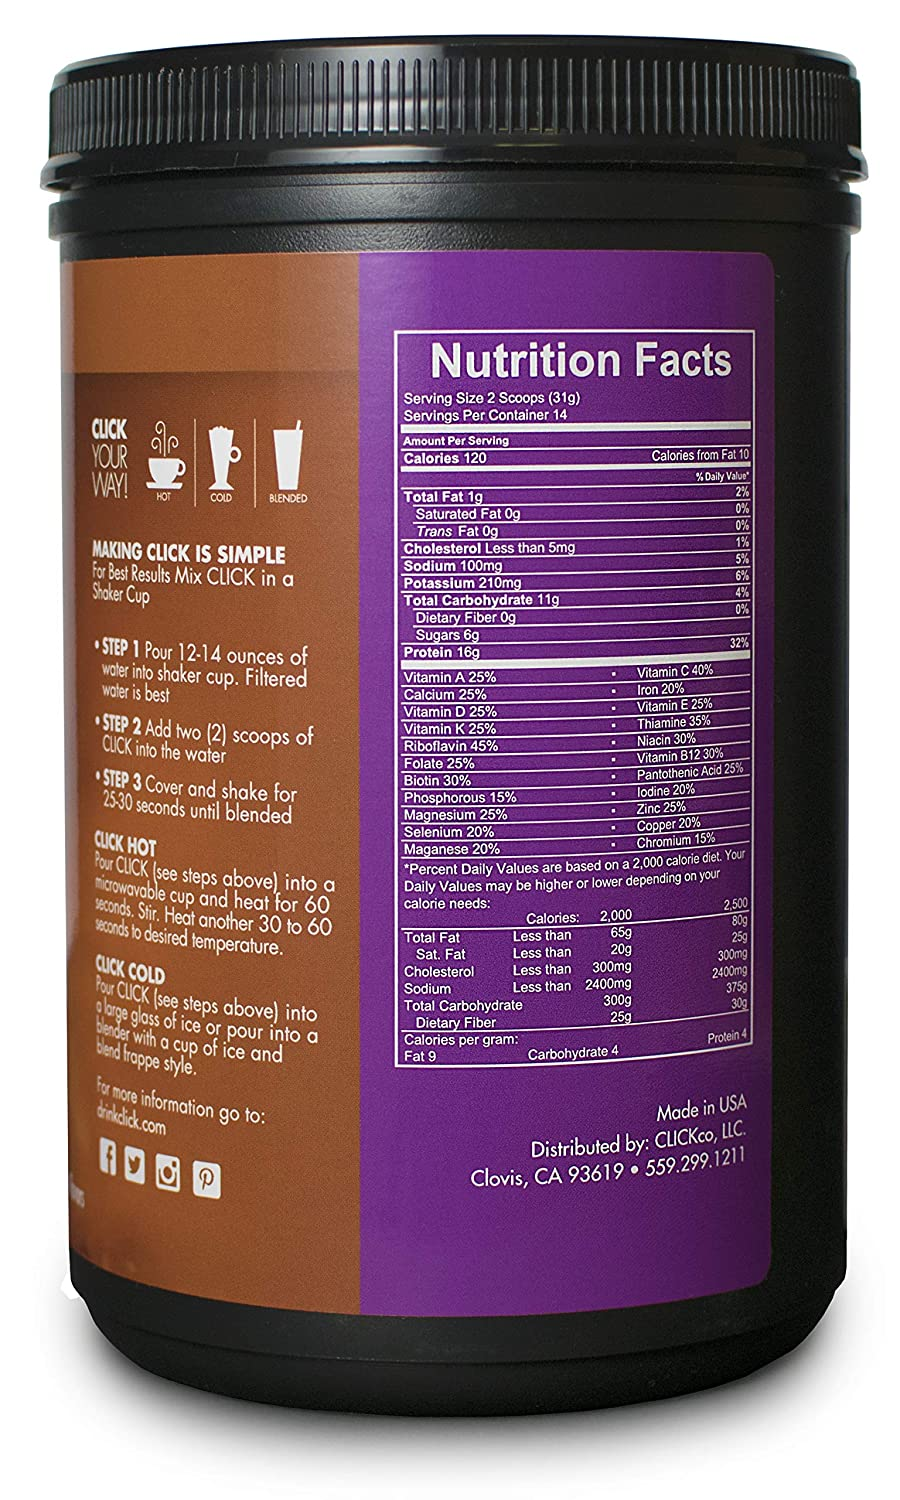 Amazon.com: CLICK All-in-One Protein & Coffee Meal Replacement Drink Mix, Caramel, 15.3 Ounce (2 Pack): Health & Personal Care